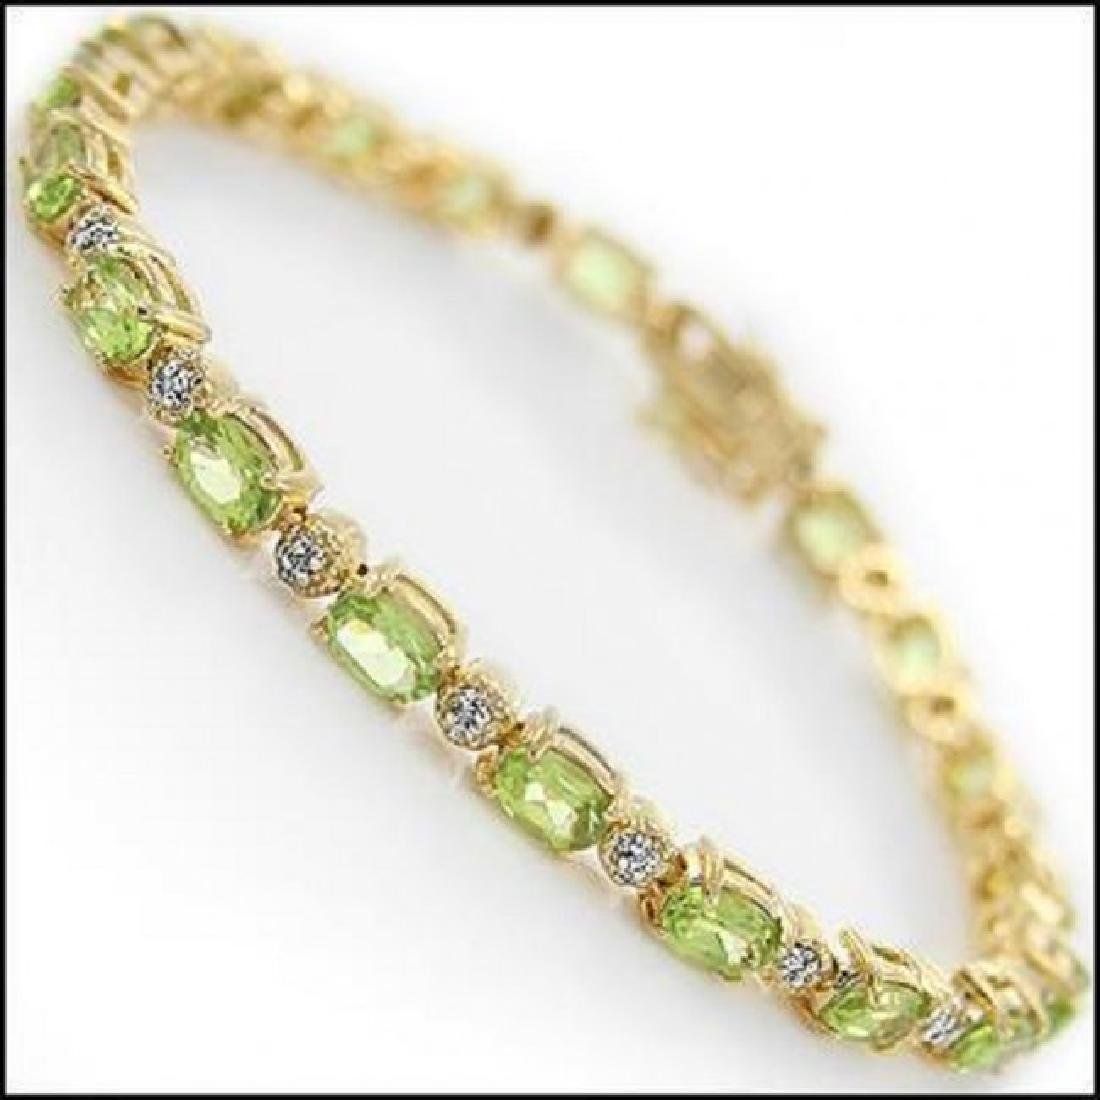 10.66 Ct Peridot & Diamond Fine Bracelet $1335